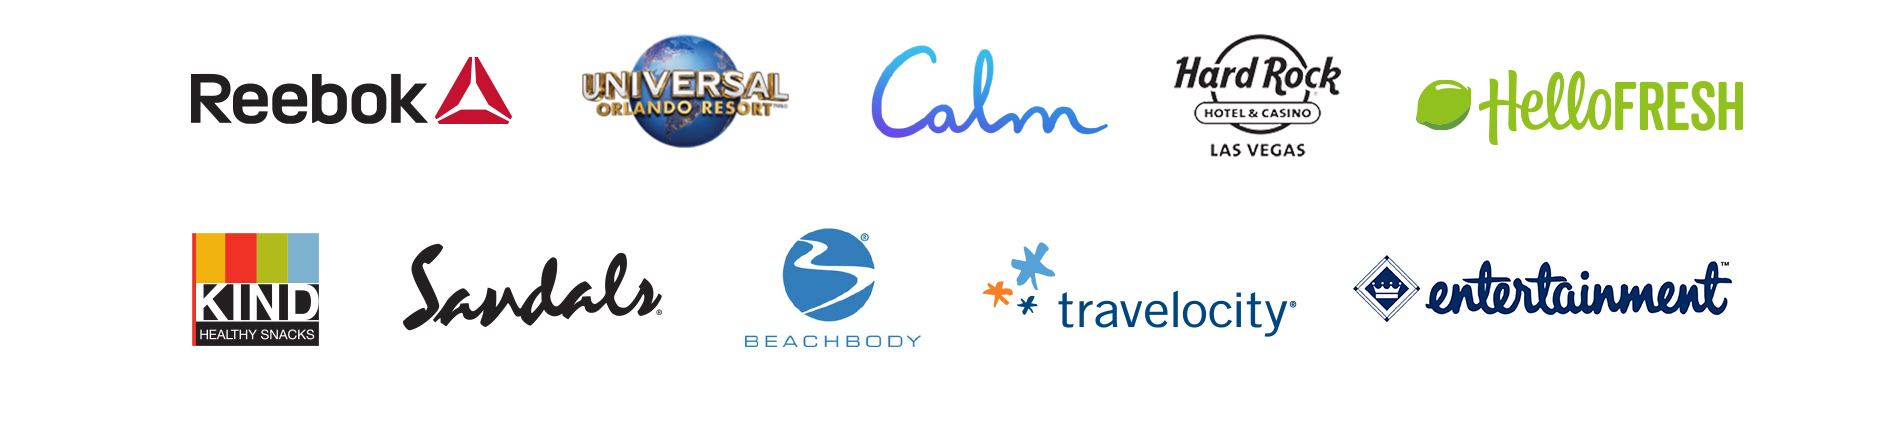 Samsung partnerships: Reebox, Universal Orlando Resort, Calm, Hard Rock Hotel & Casino, HelloFresh, KIND, Sandals, Beachbody, Travelocity, entertainment